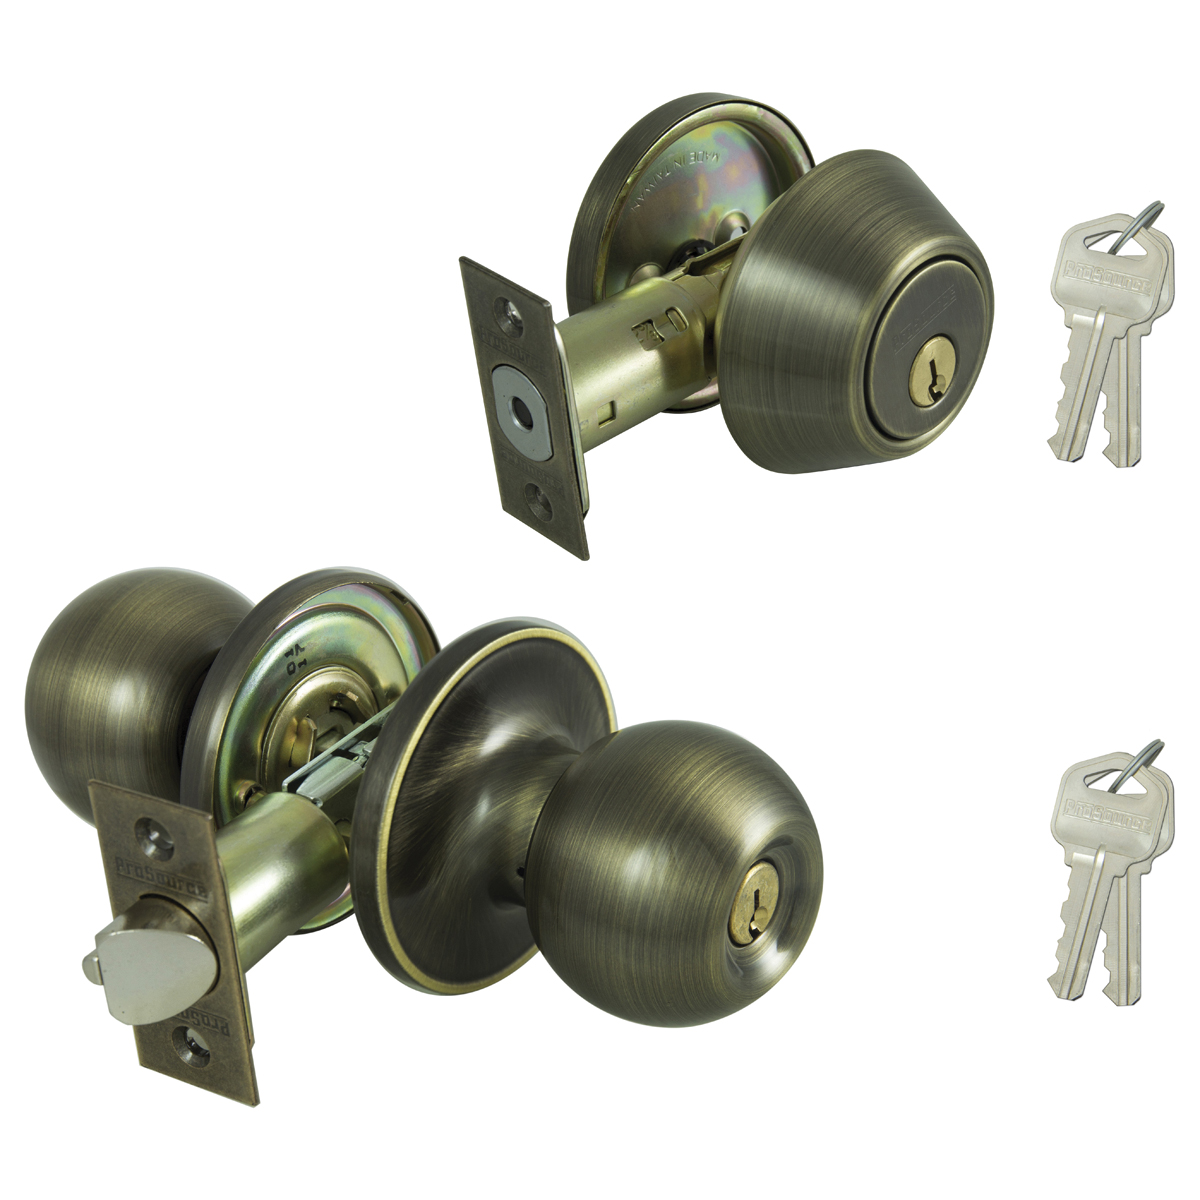 Picture of Prosource B38B1-PS Deadbolt and Entry Lockset, Keyed Alike Key, Brass, Antique Brass